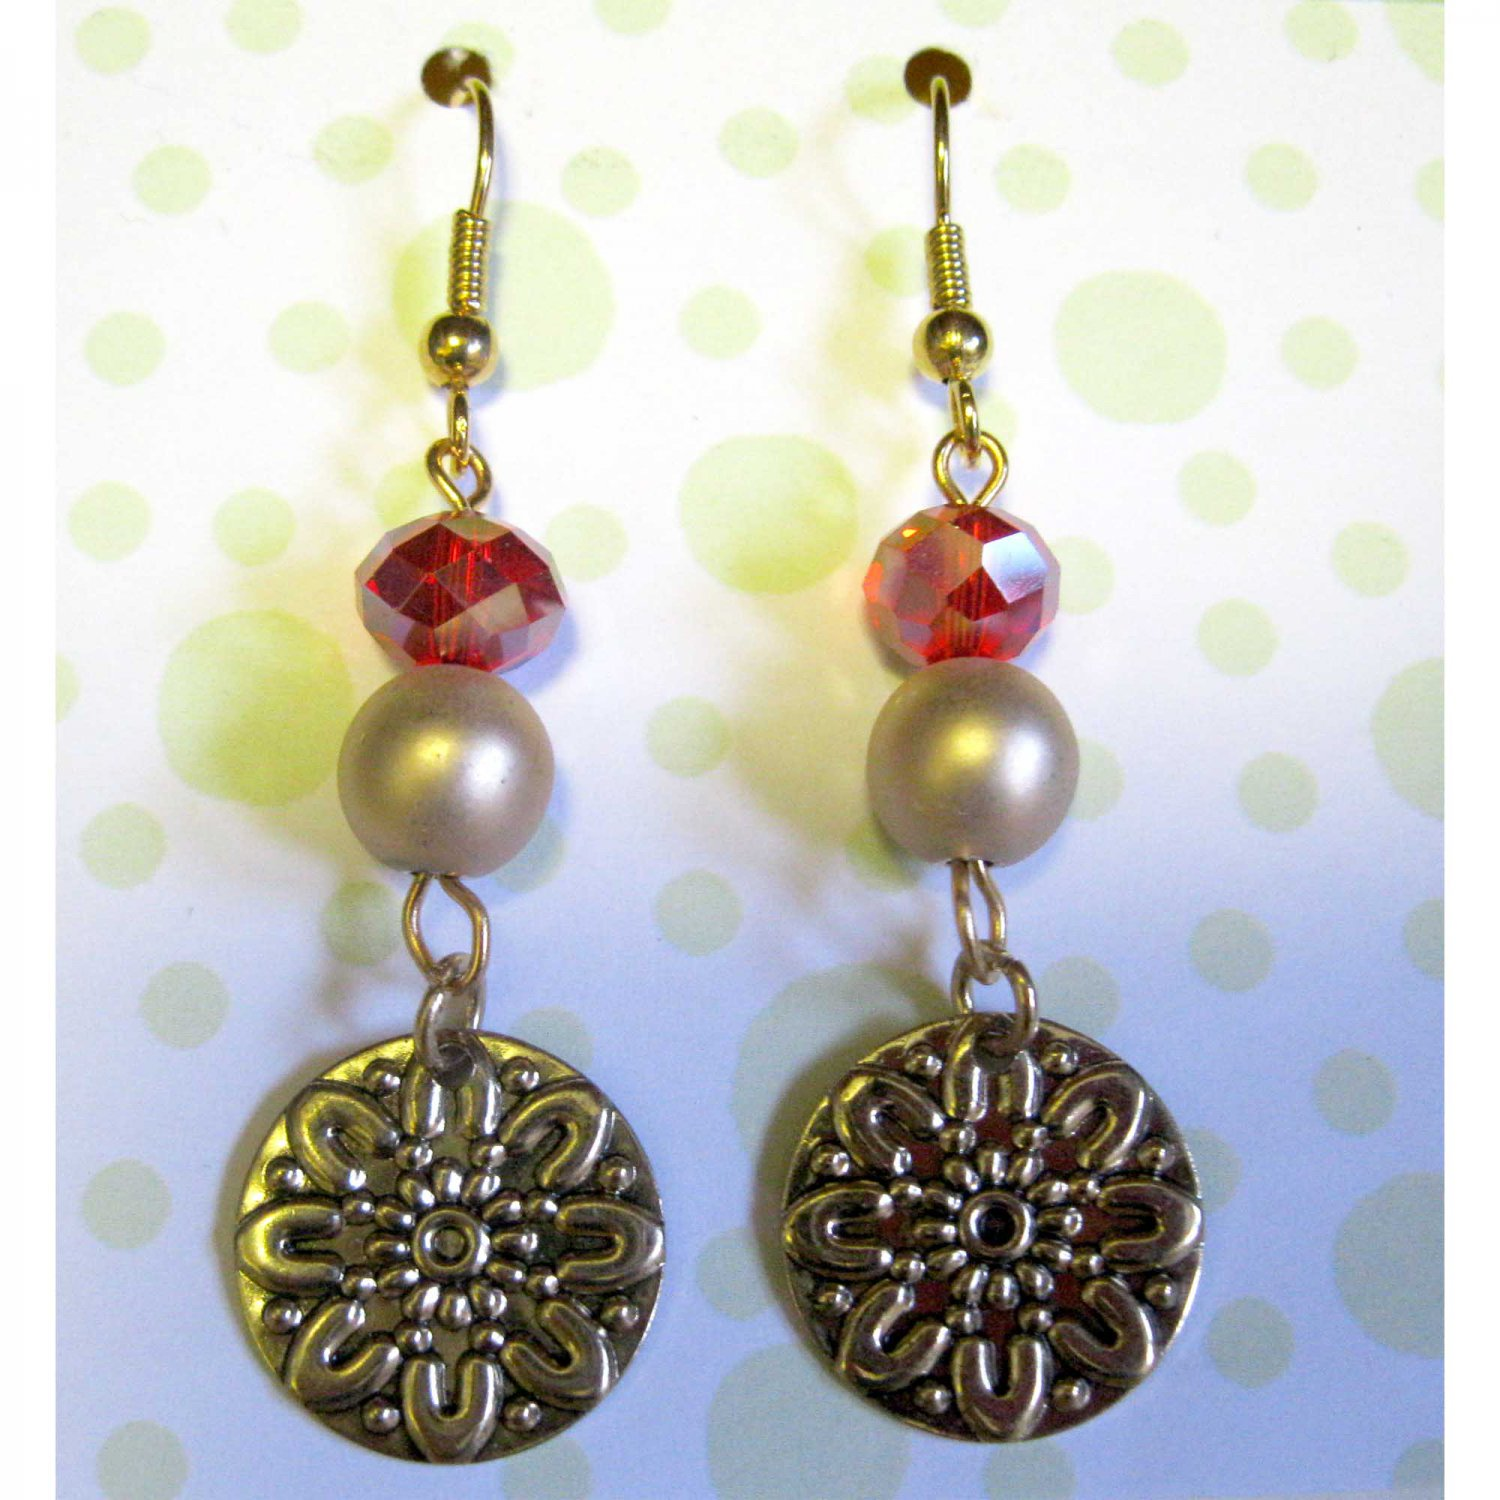 Gold and red earrings fashion drop jewelry